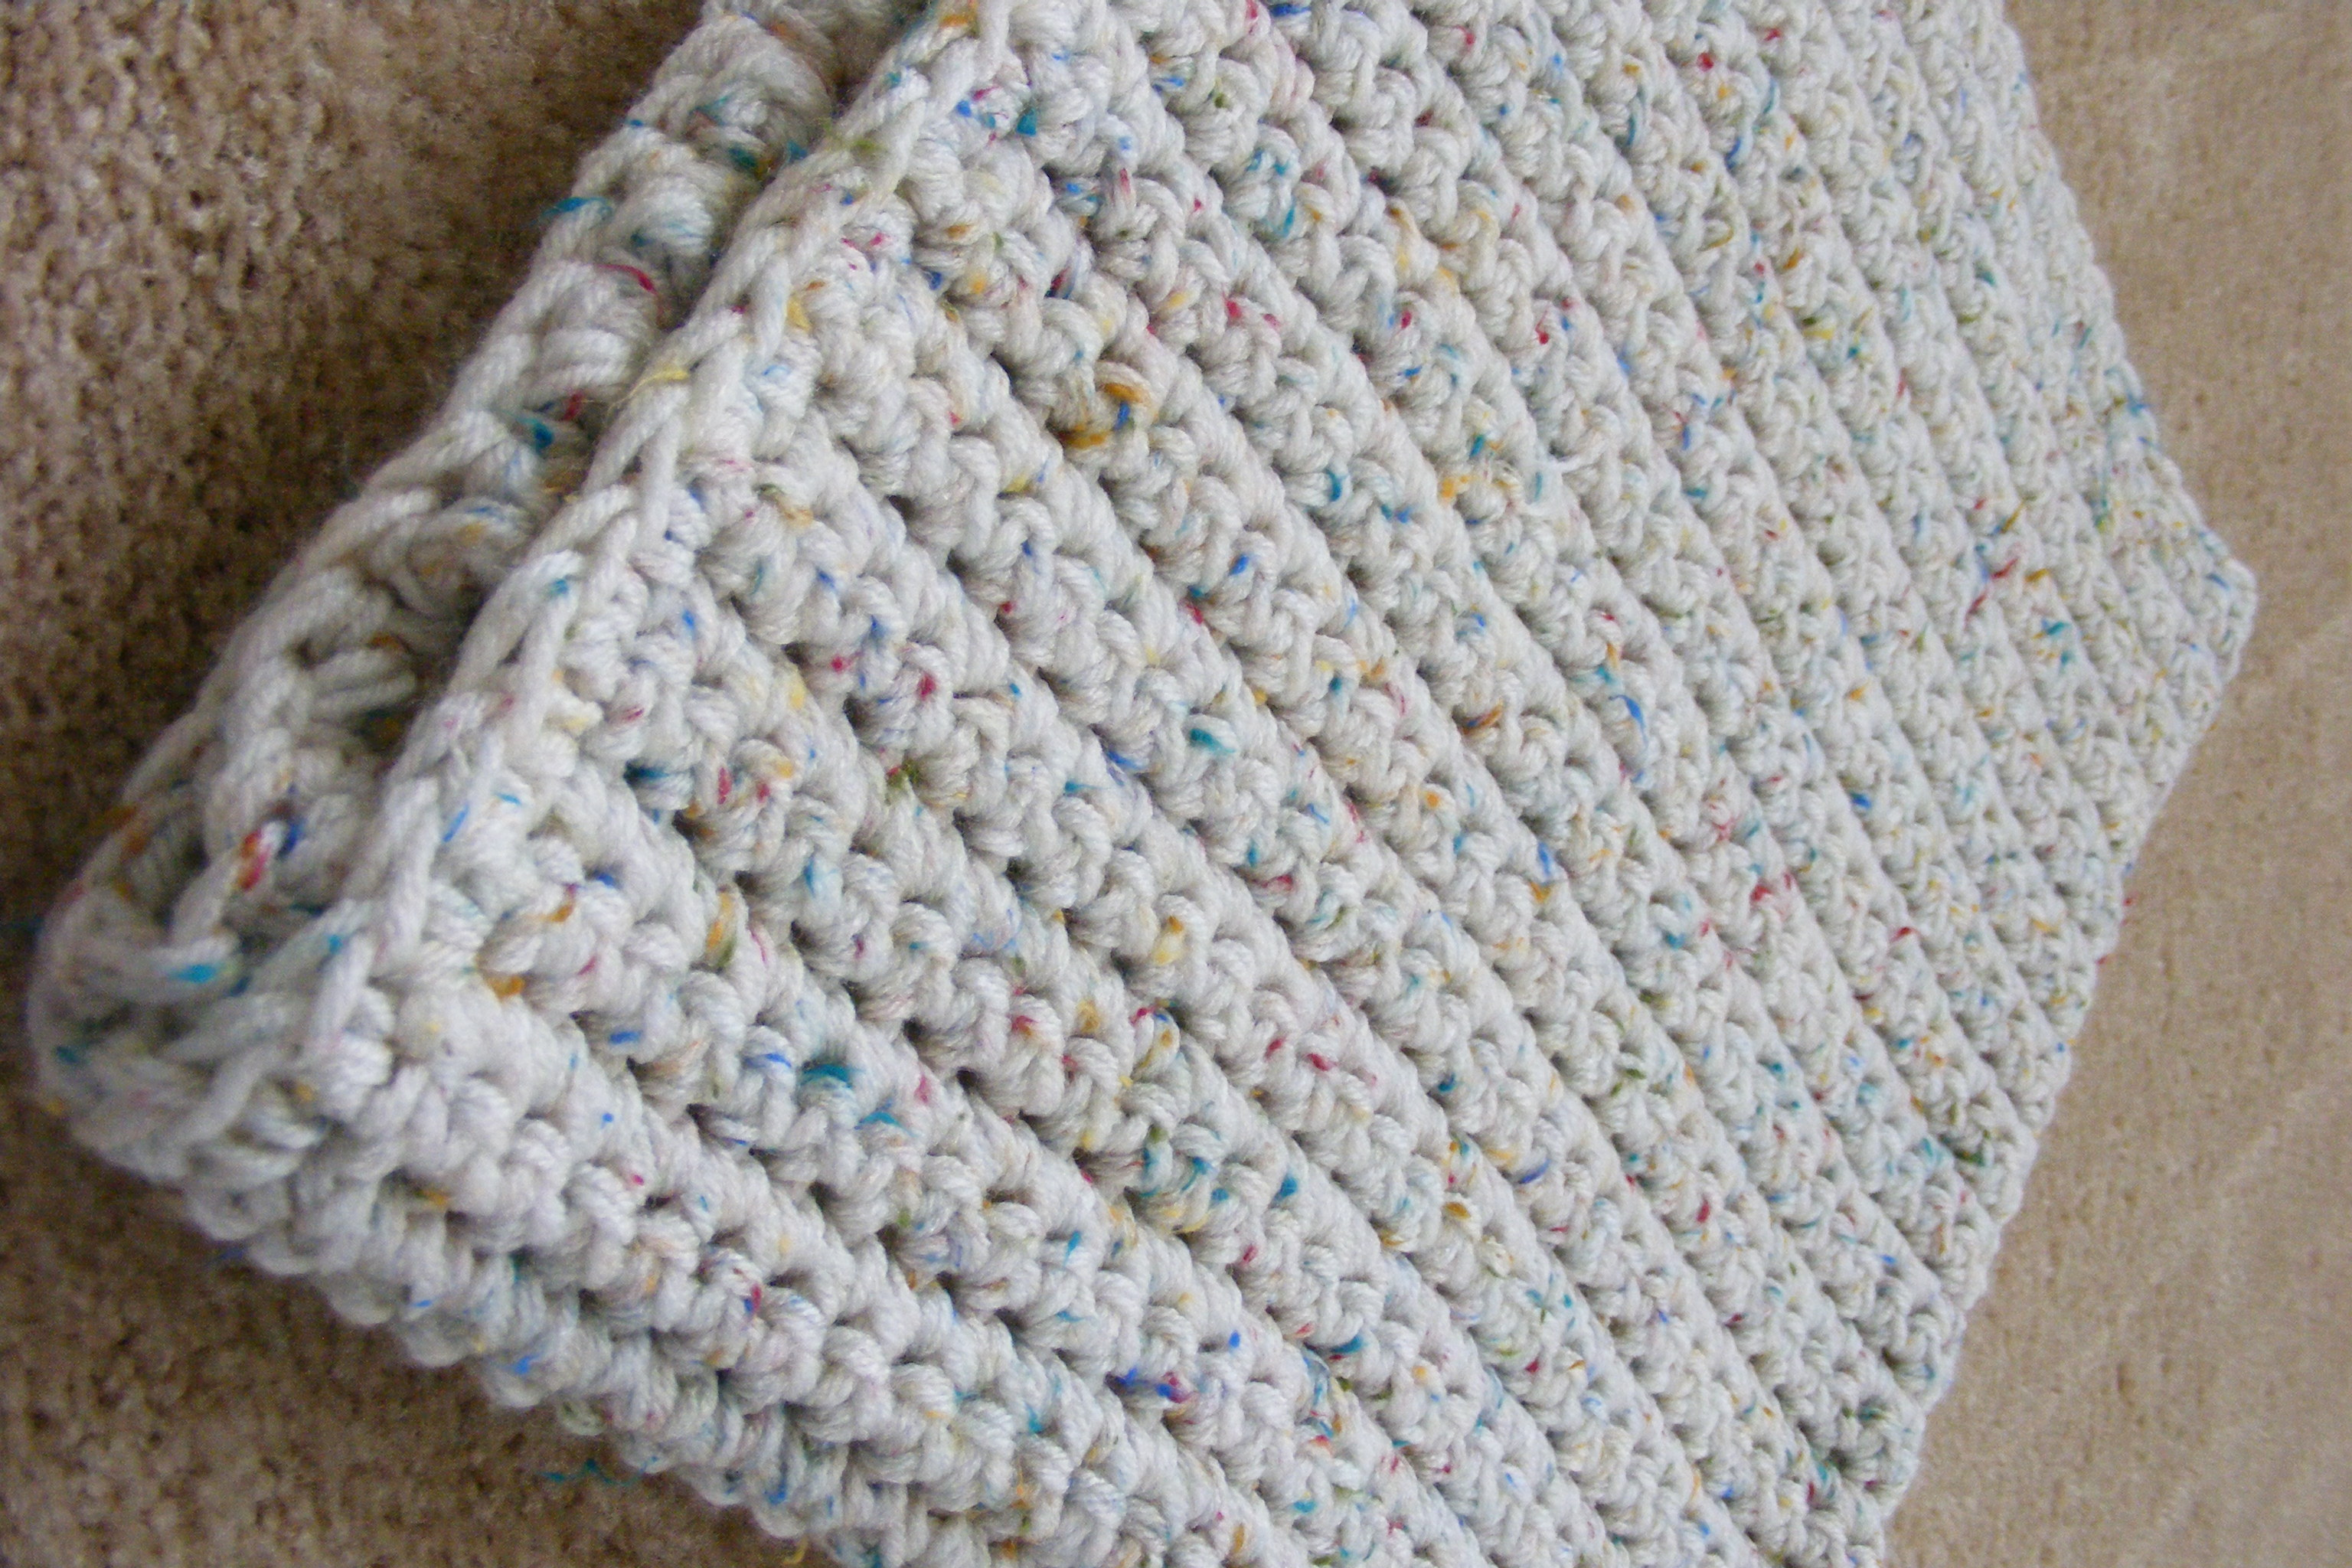 Single crochet baby blanket pattern gretchkals yarny adventures advertisements bankloansurffo Gallery